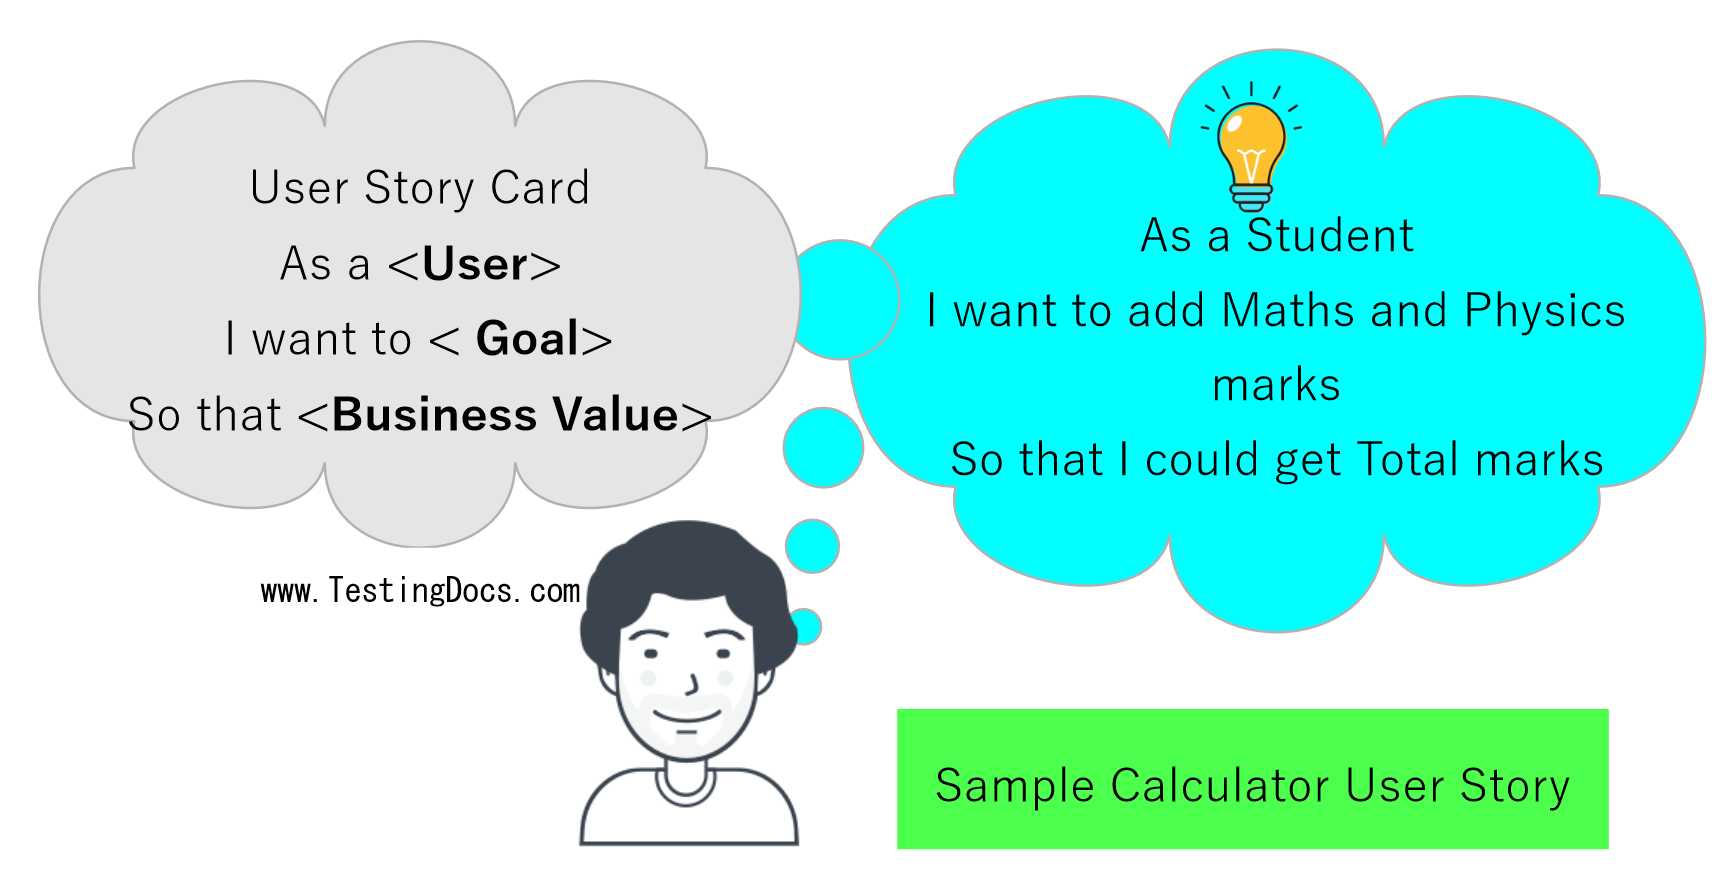 Sample Calculator User Story